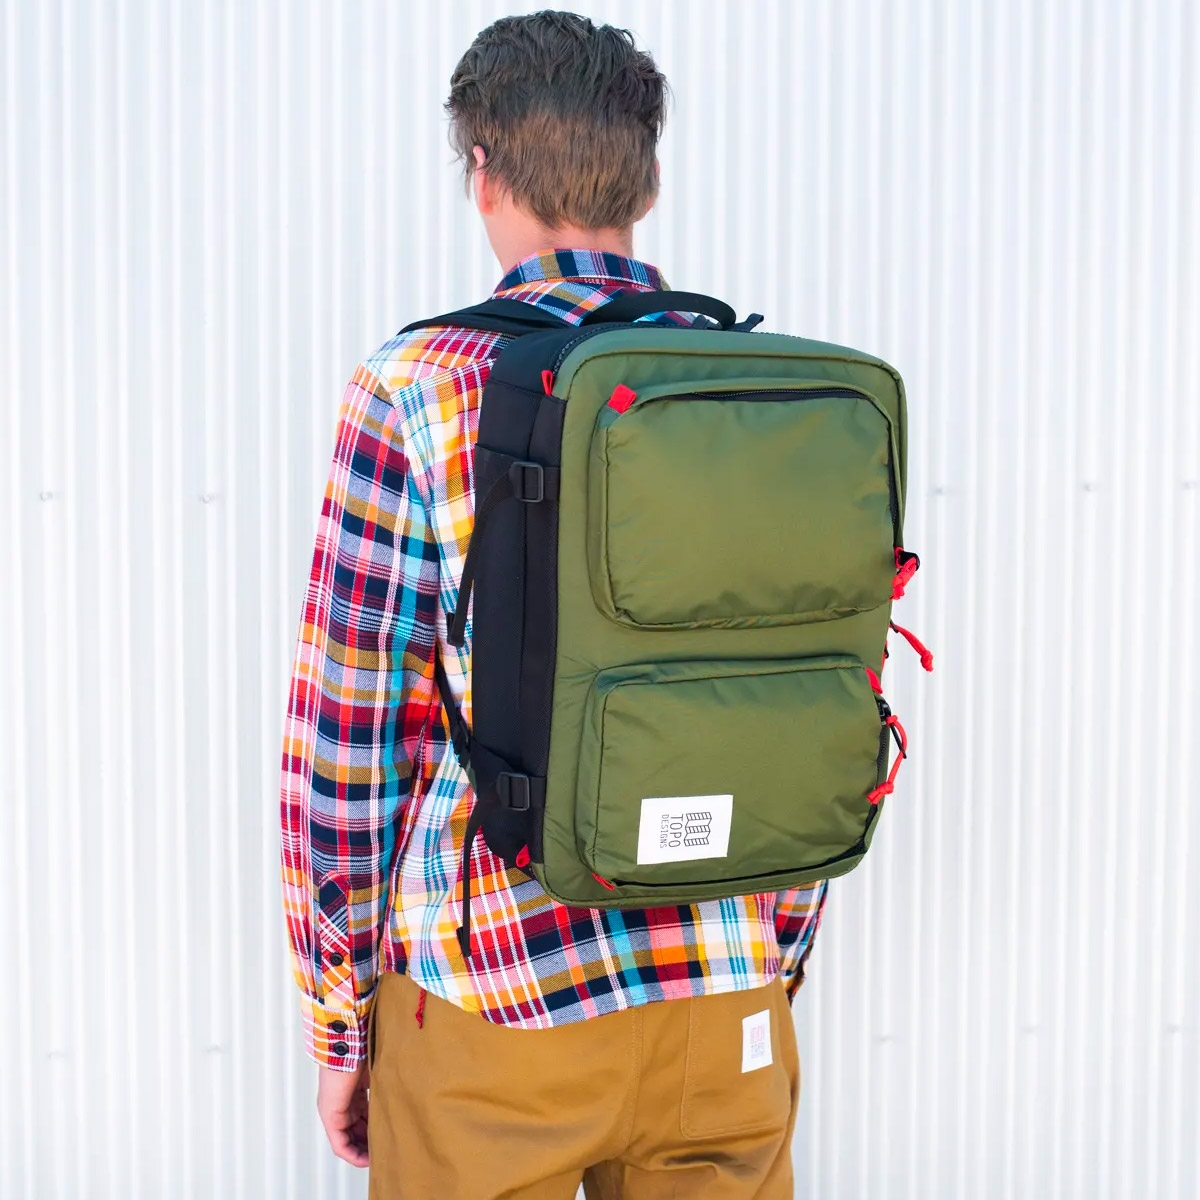 Topo Designs Global Briefcase 3-day, the perfect bag for everyday carry or 3-day weekends